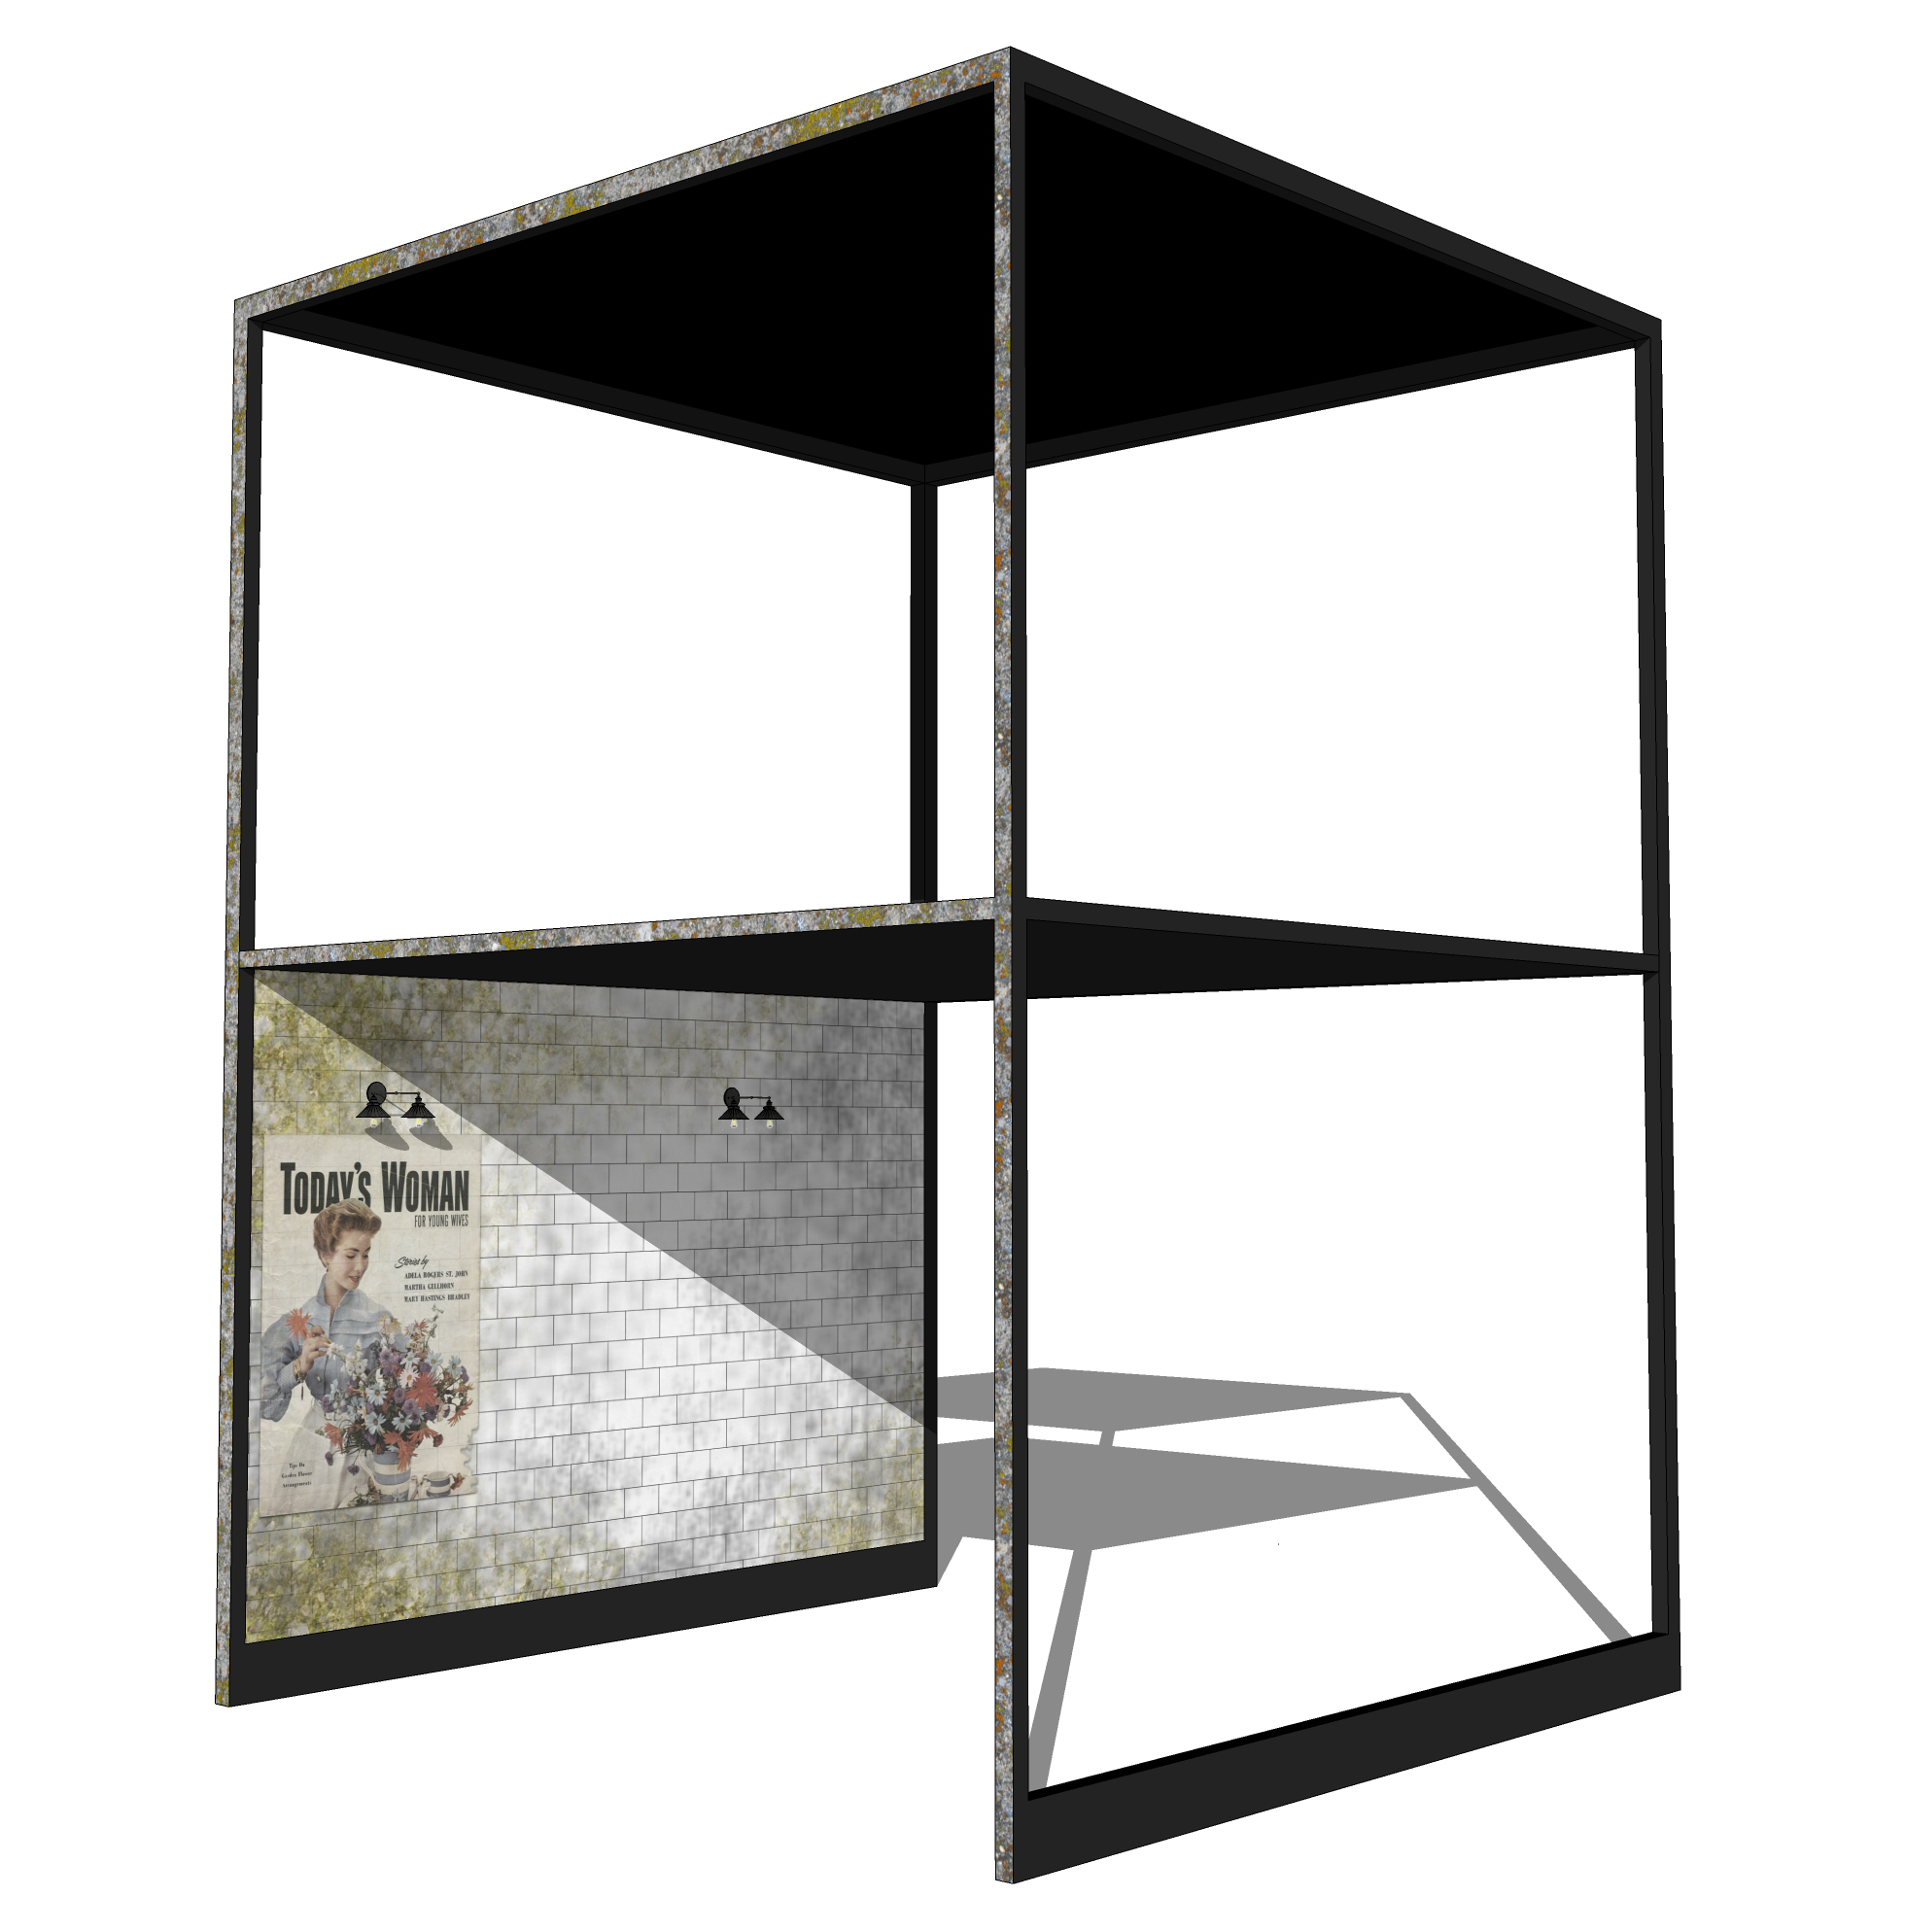 Building Frame and Inside Store Wall Design.jpg